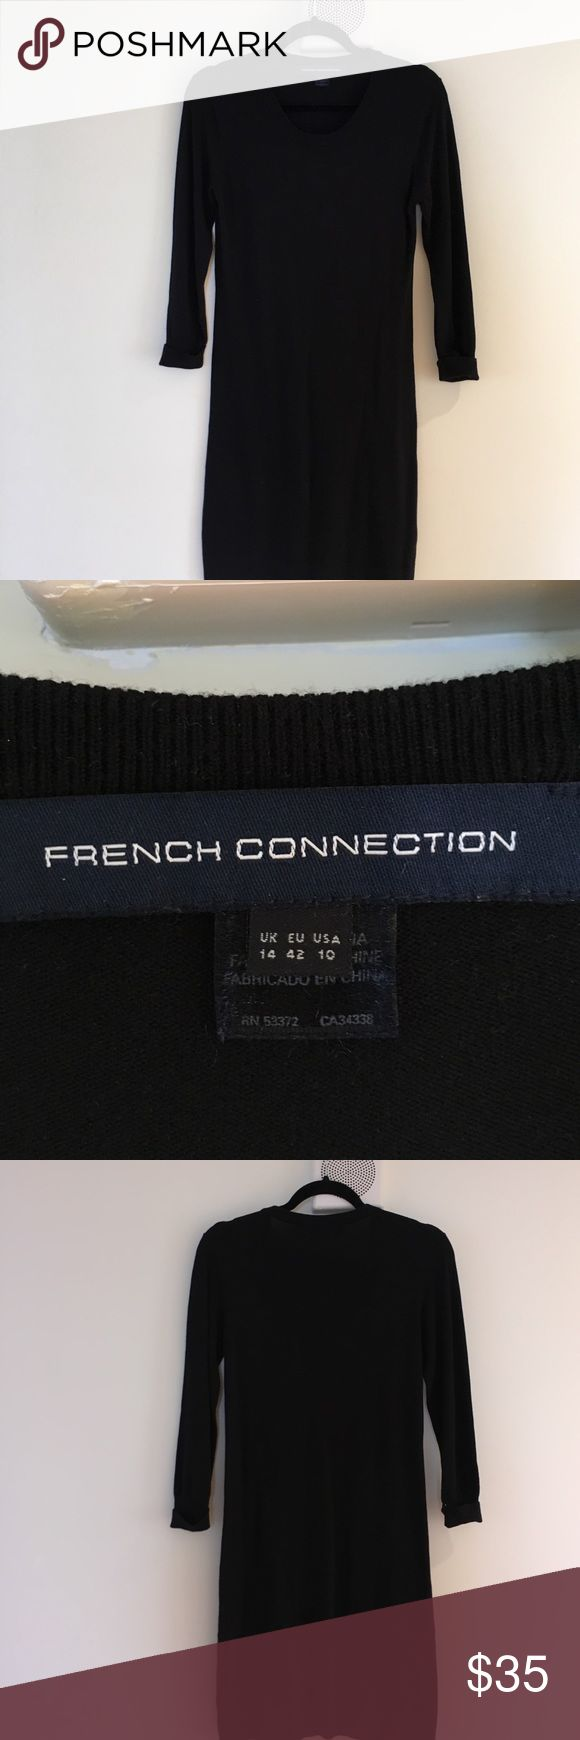 French Connection sweater dress. Size 10 Good condition sweater dress by French Connection. Soft and stretchy but holds form. French Connection Dresses Midi